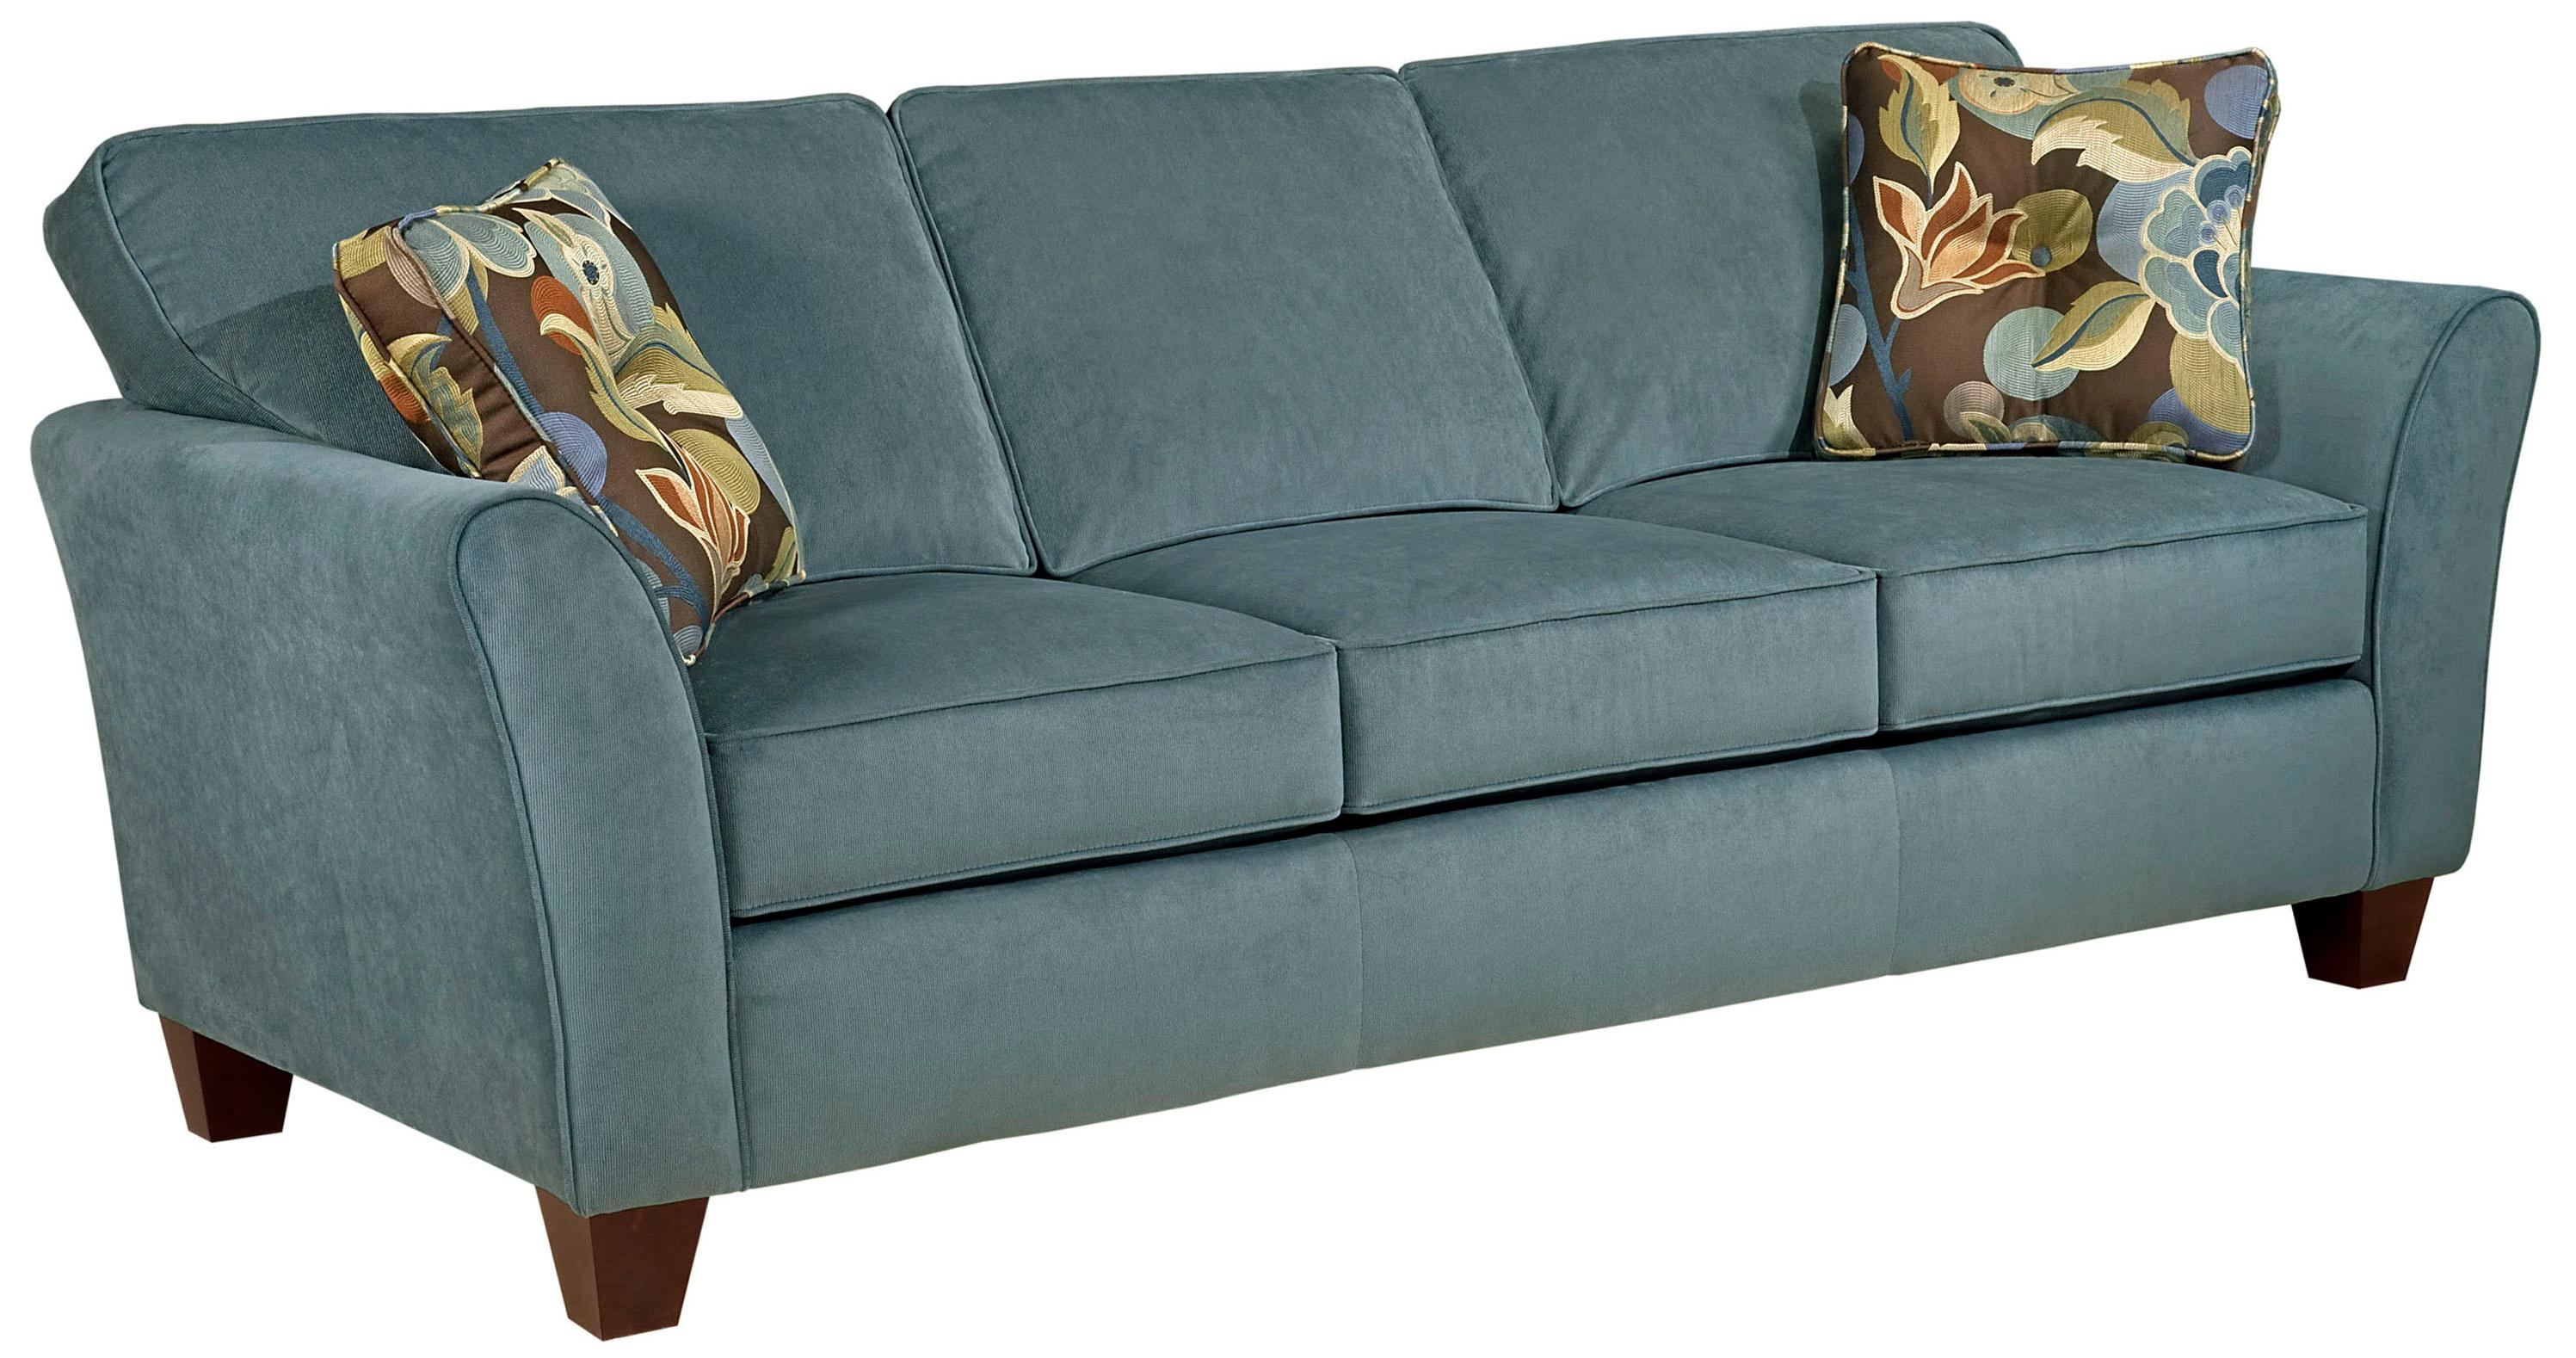 Broyhill Furniture Maddie Contemporary Style Sofa - Item Number: 6517-3-8172-34